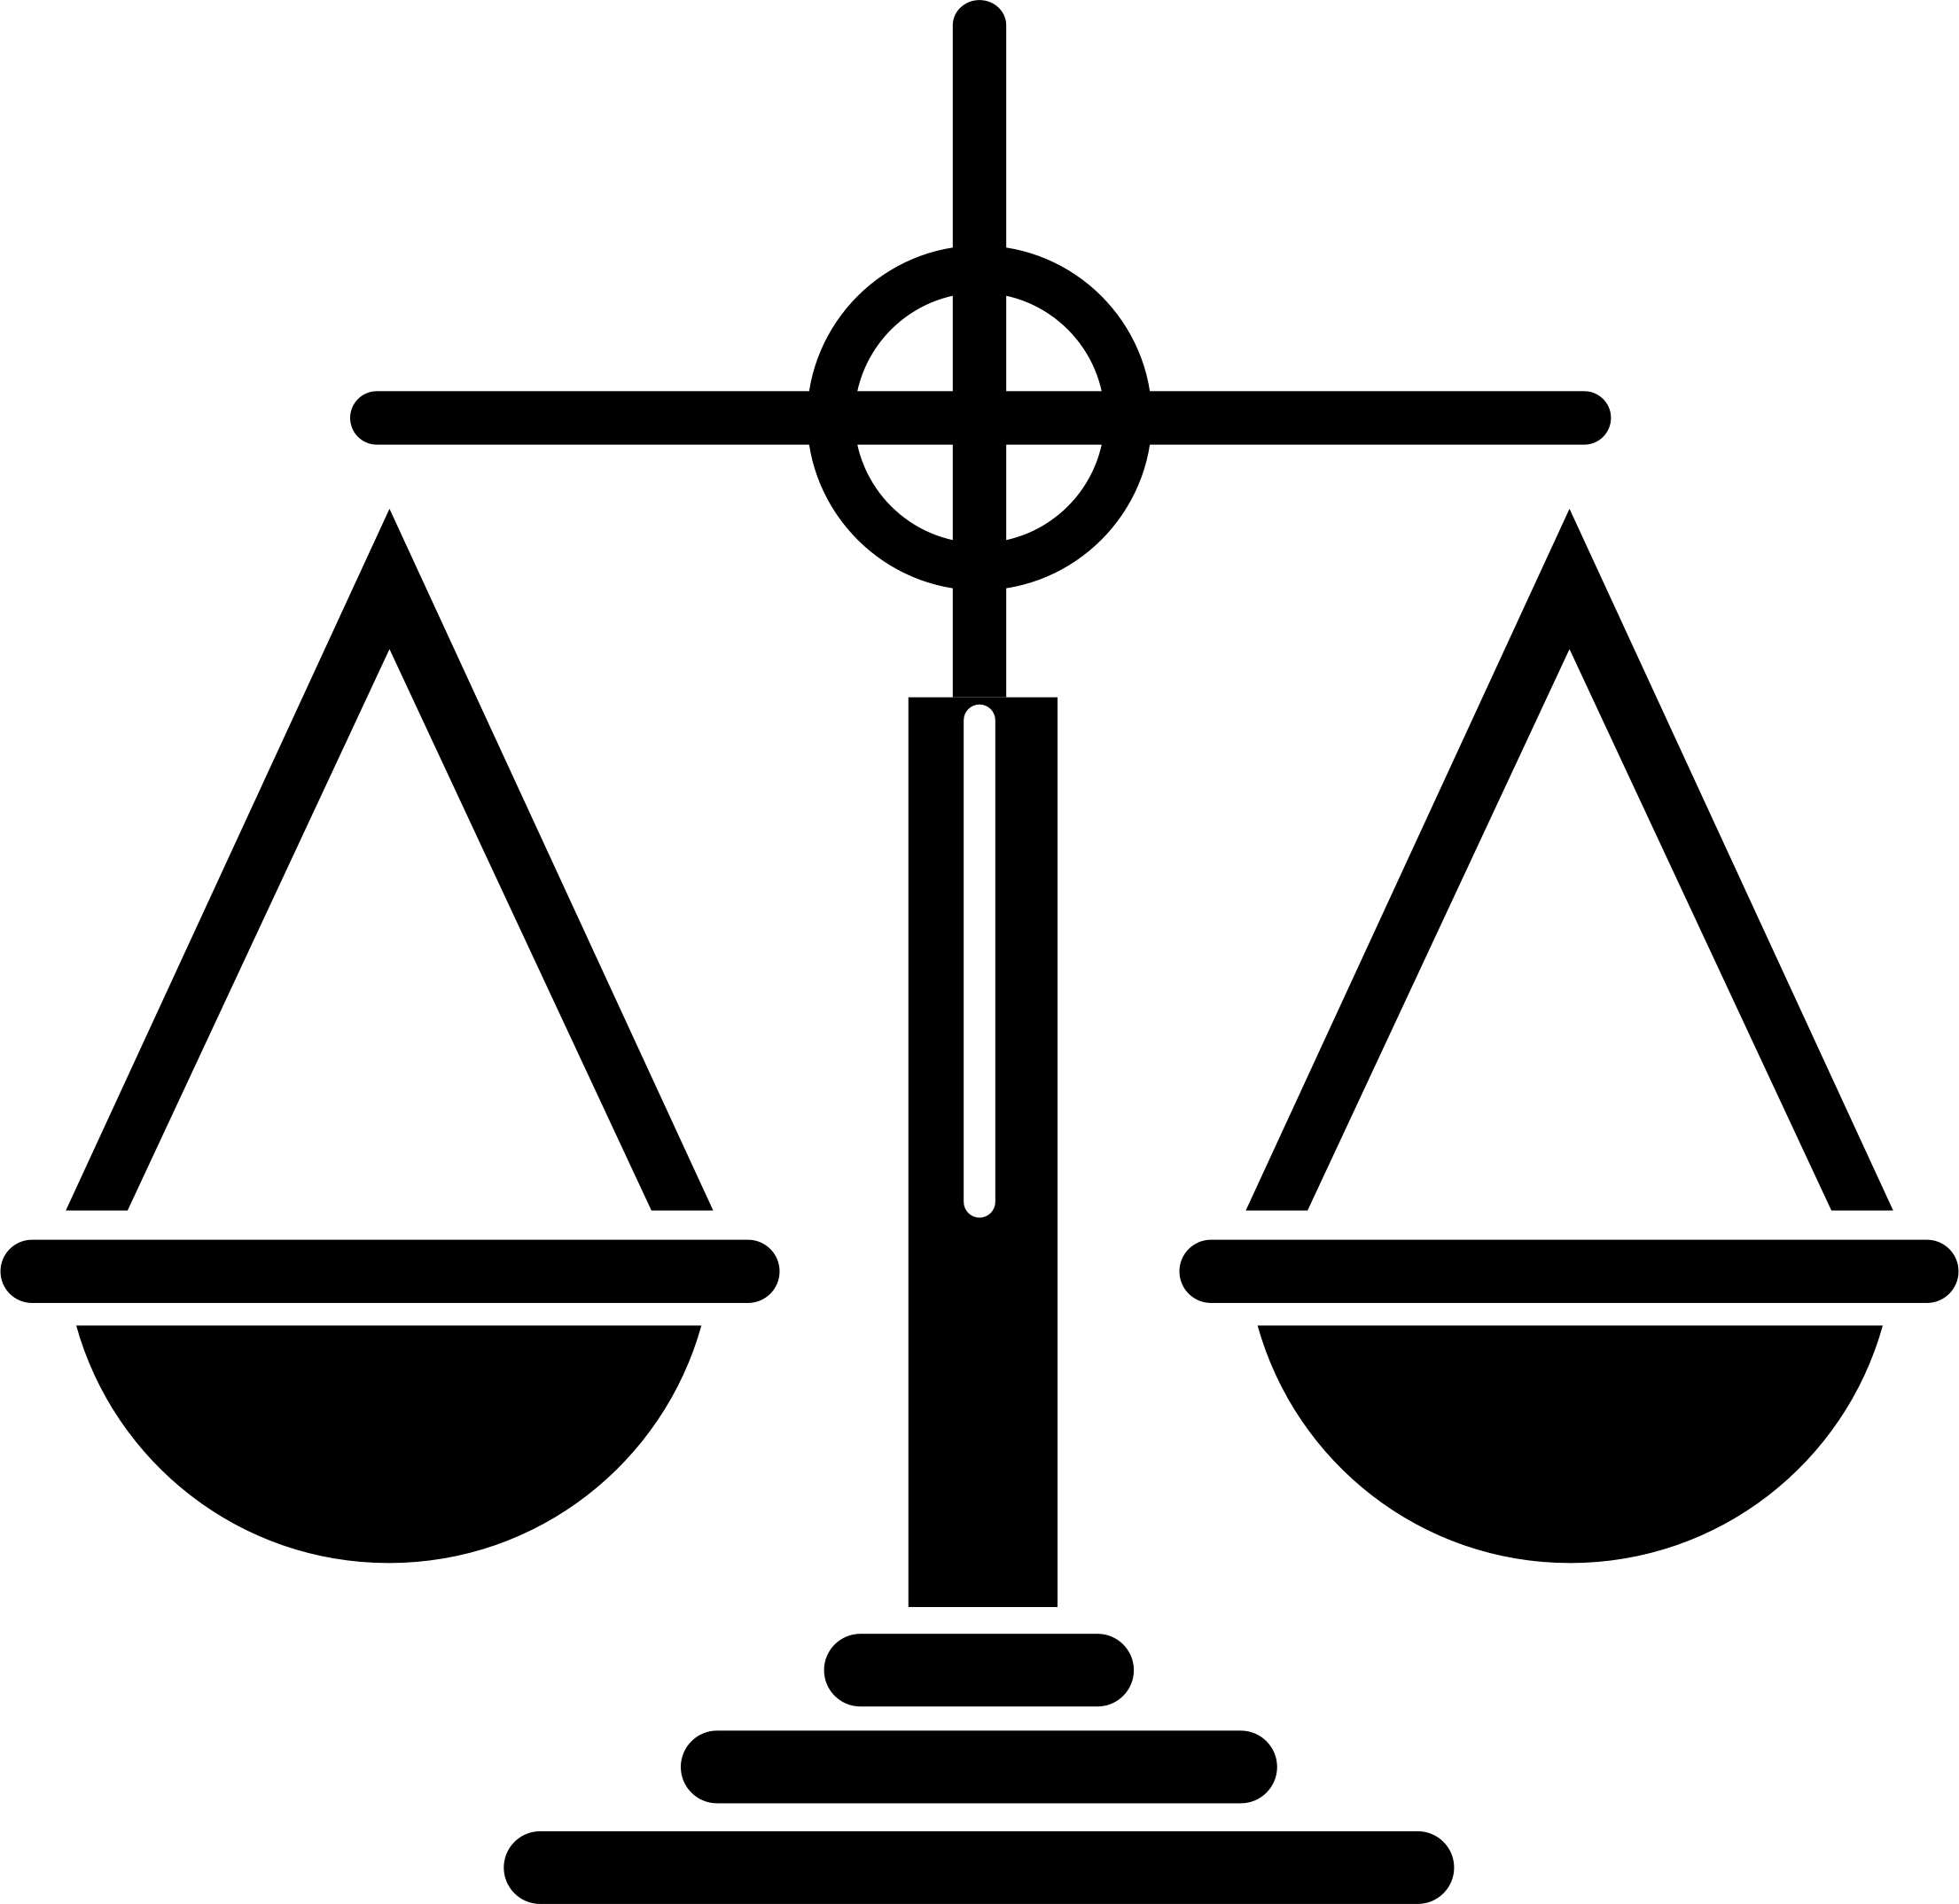 Justice vector lawyer symbol. Scales of icon icons